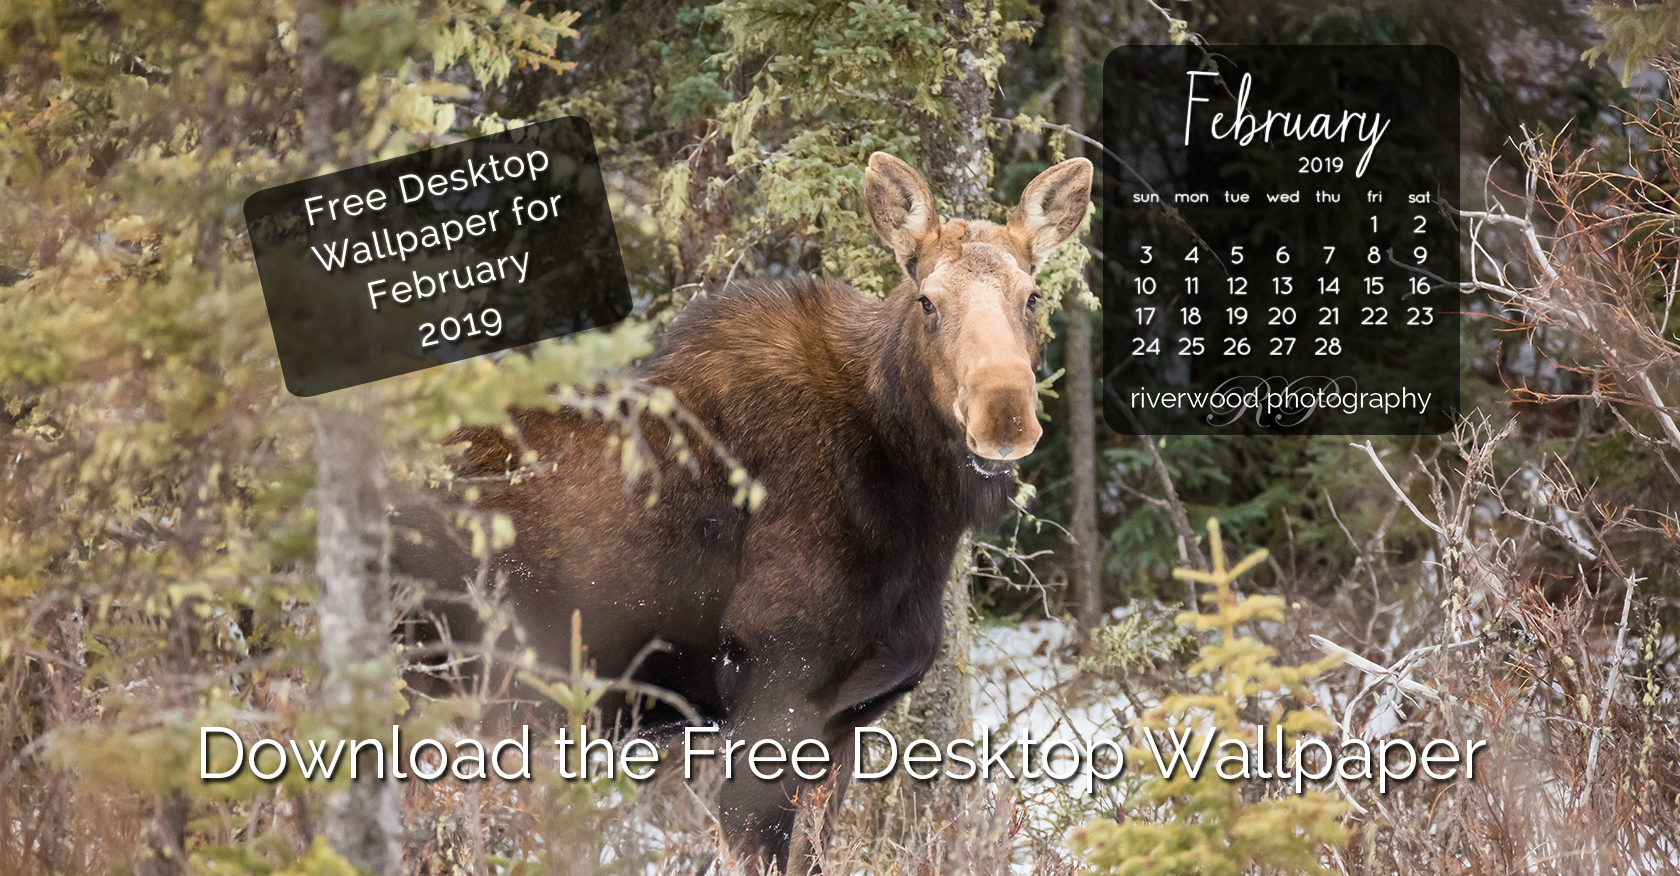 Free Desktop Wallpaper for February 2019 – Bragg Creek Moose